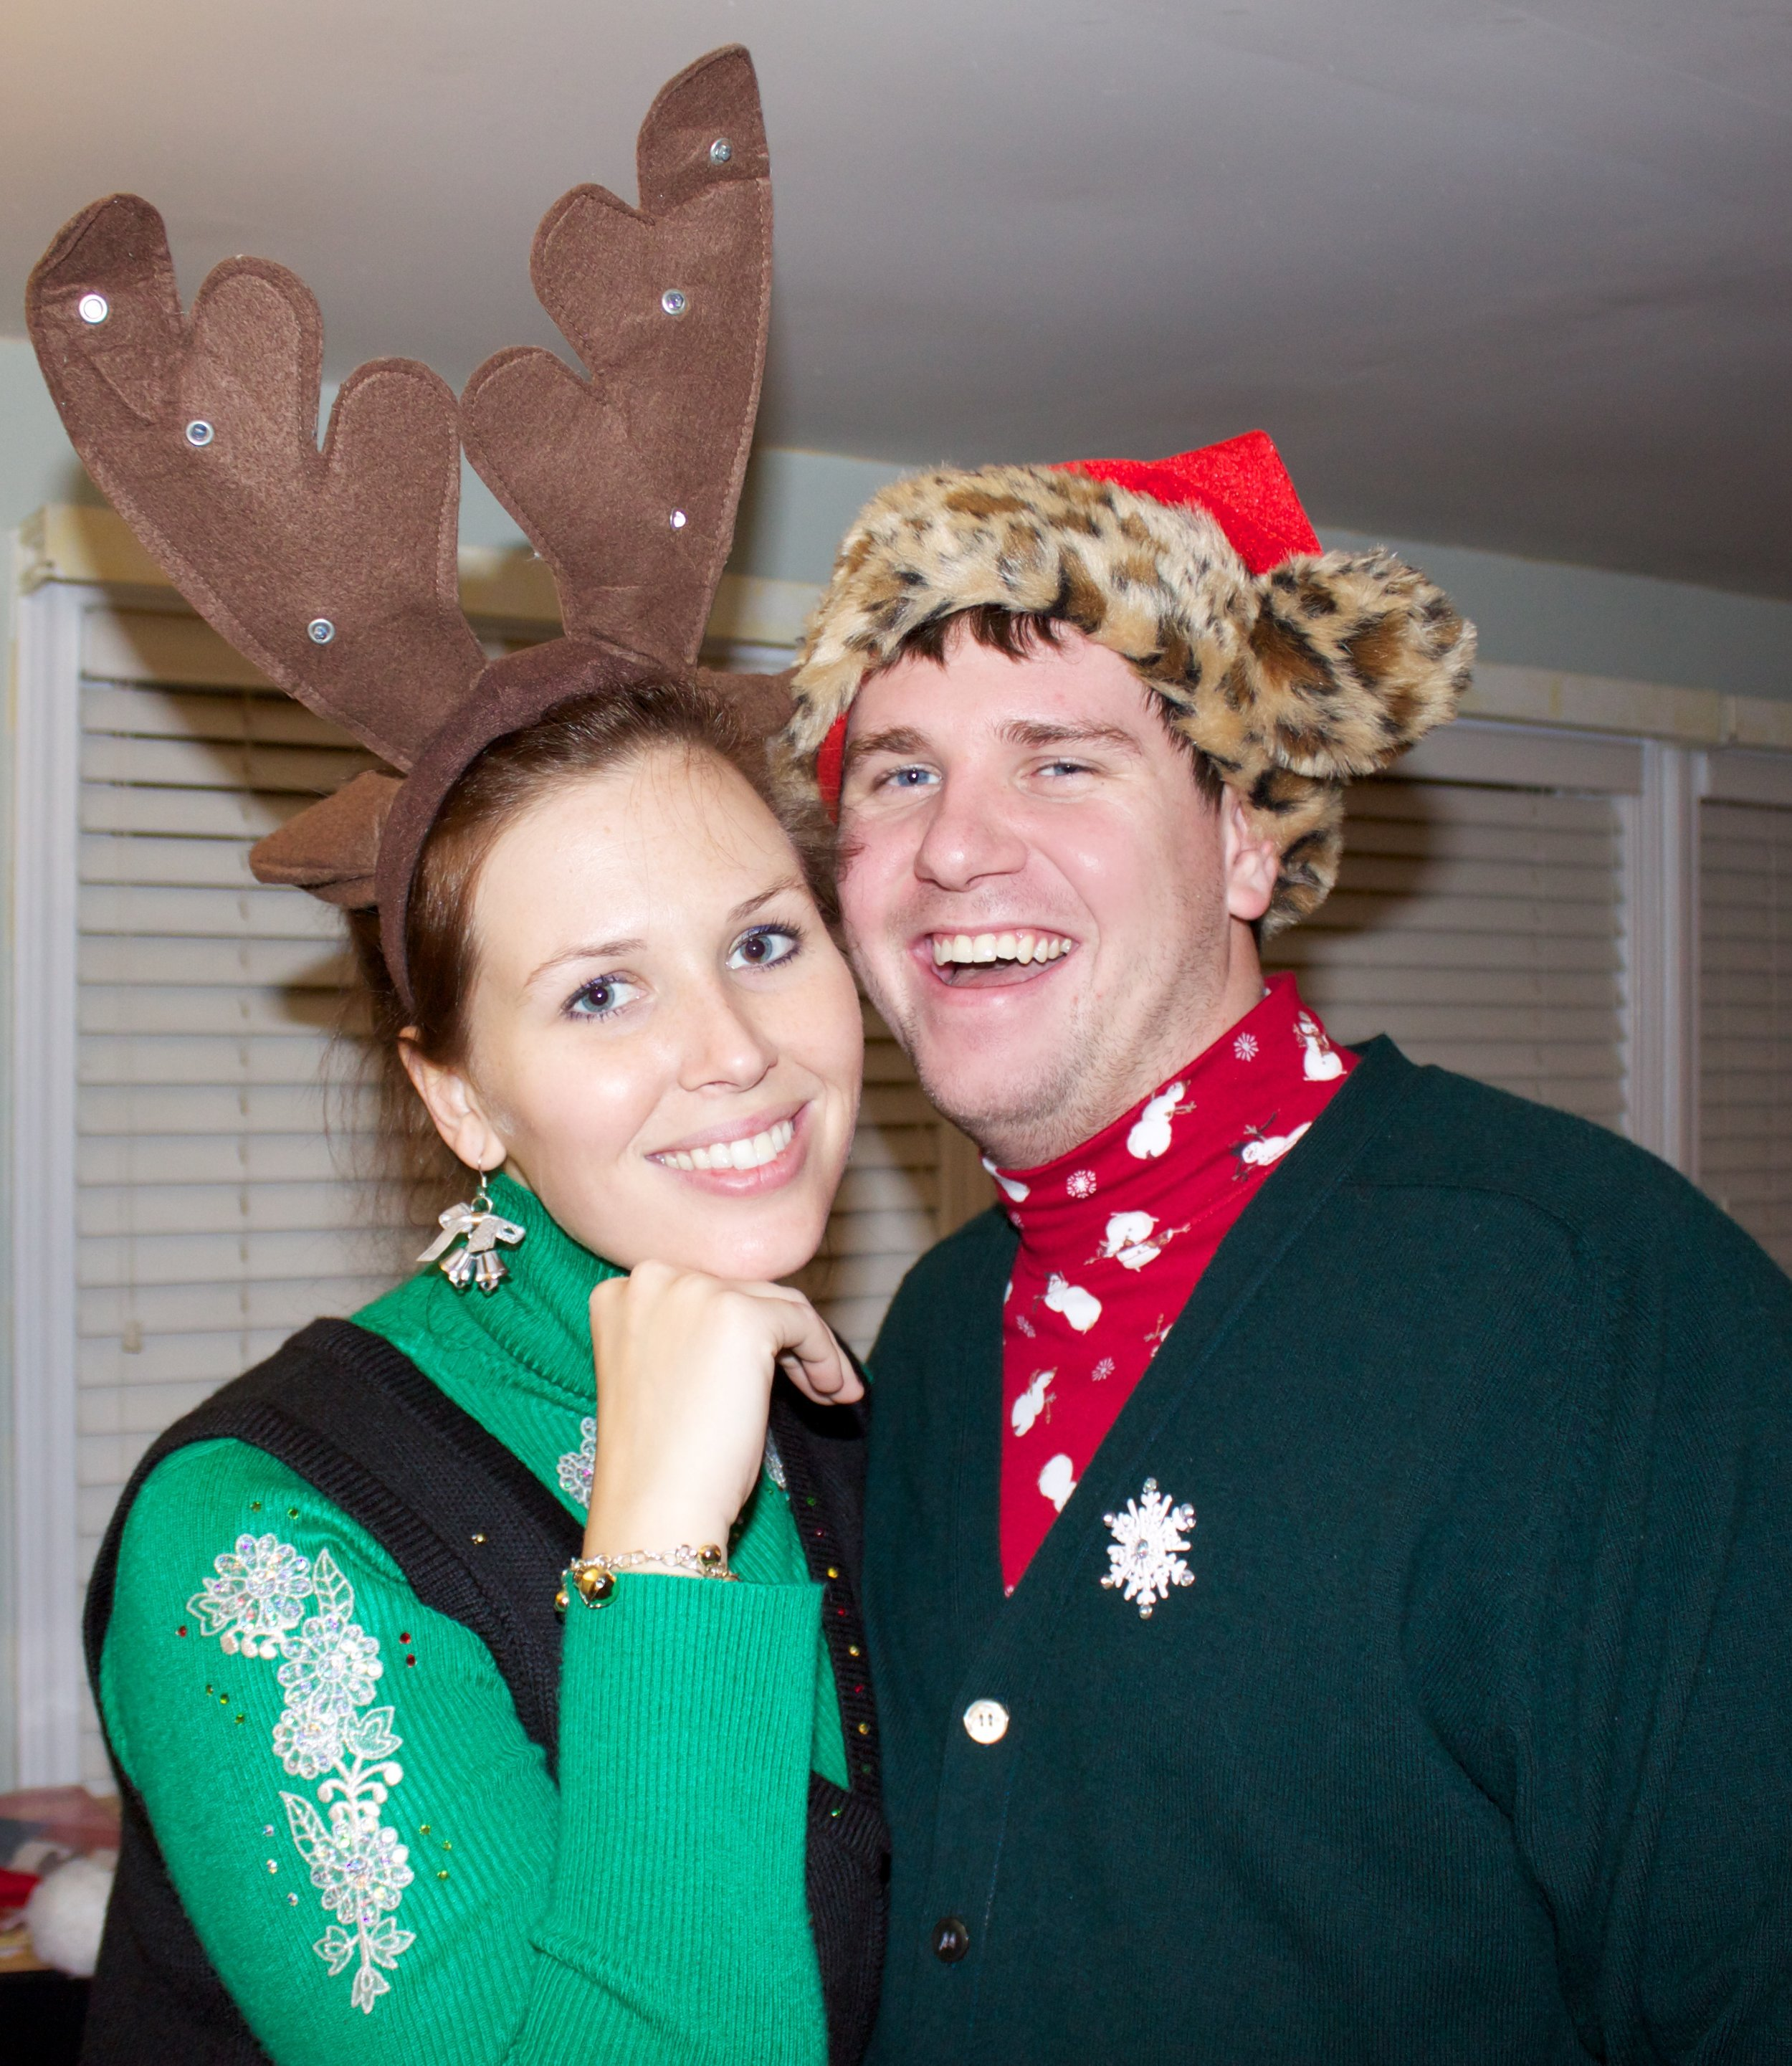 DISCLAIMER: just because we have a child now does NOT mean we won't dress up like this again. JUST FYI.